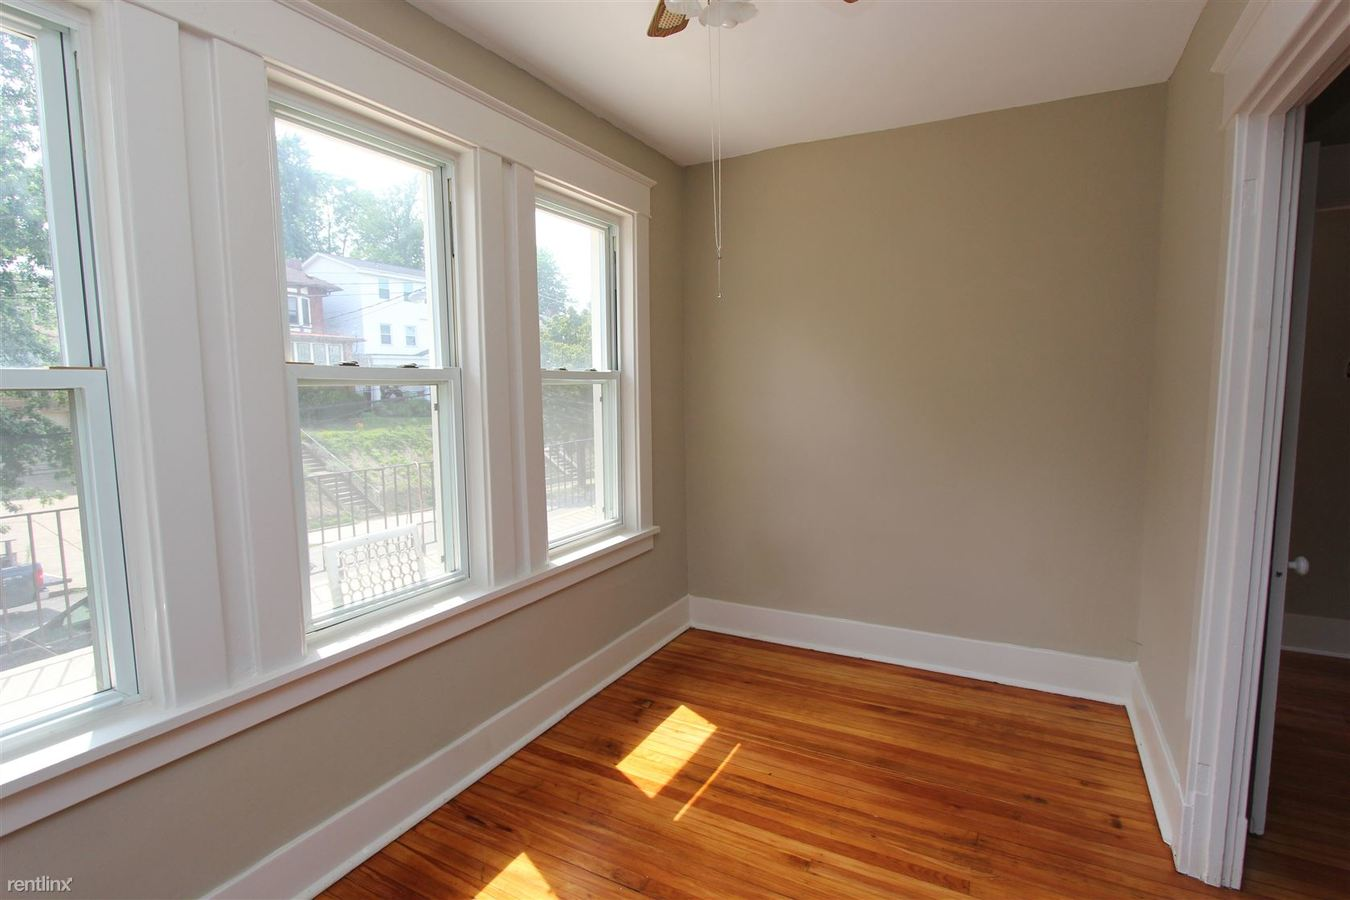 2 Bedrooms 1 Bathroom Apartment for rent at 6365 Alderson St in Pittsburgh, PA